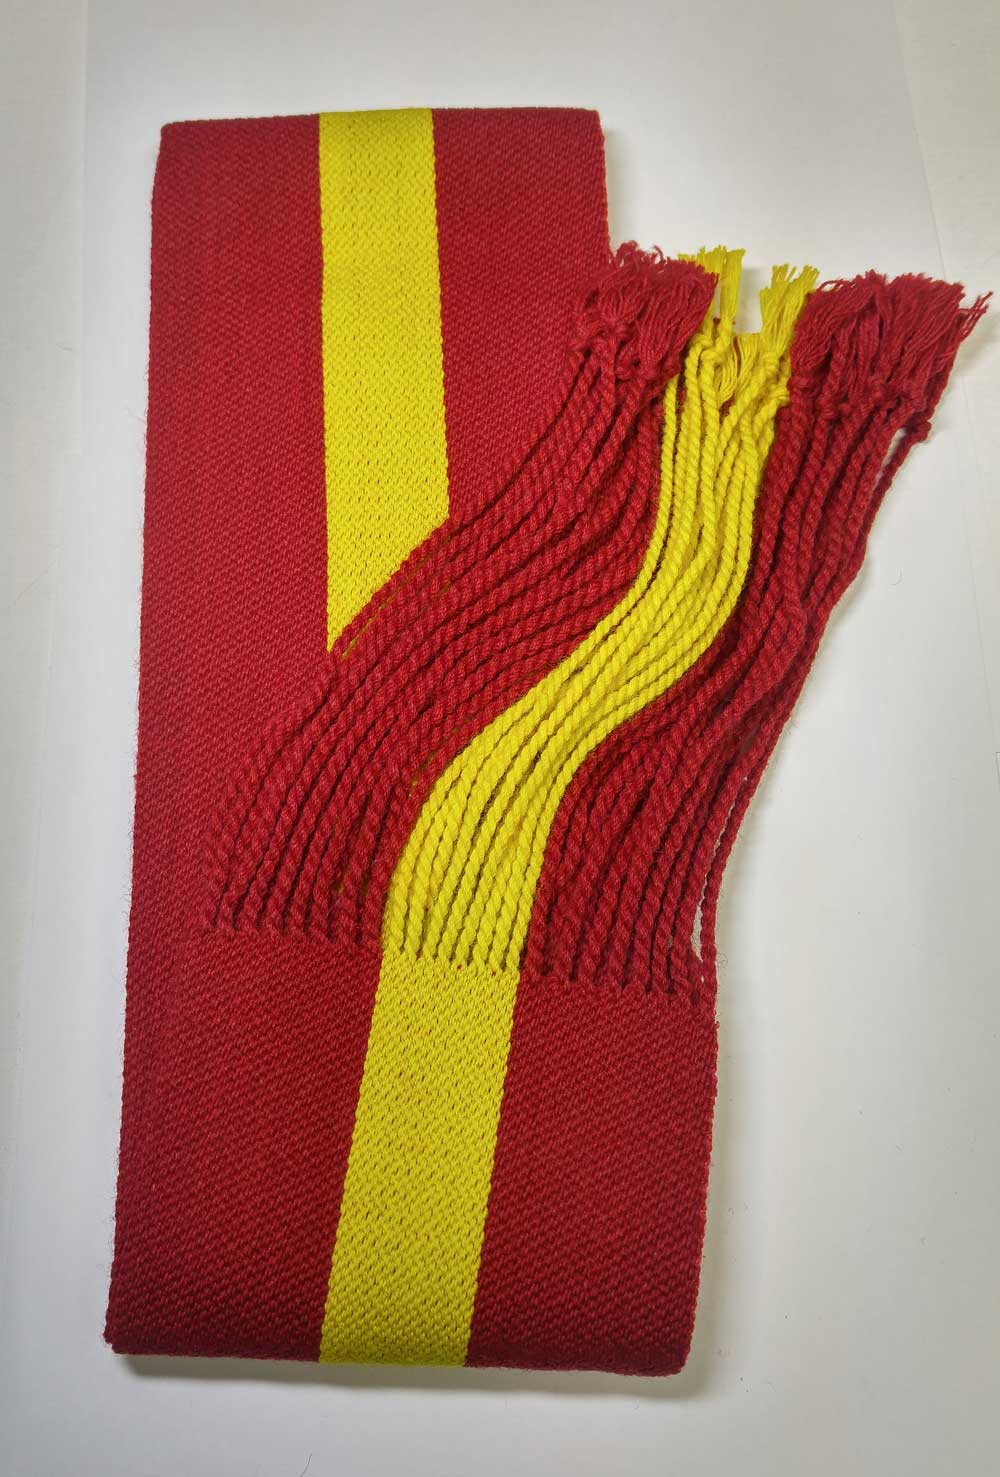 Sash: Sgt., Red with Yellow Stripe, 18/19C